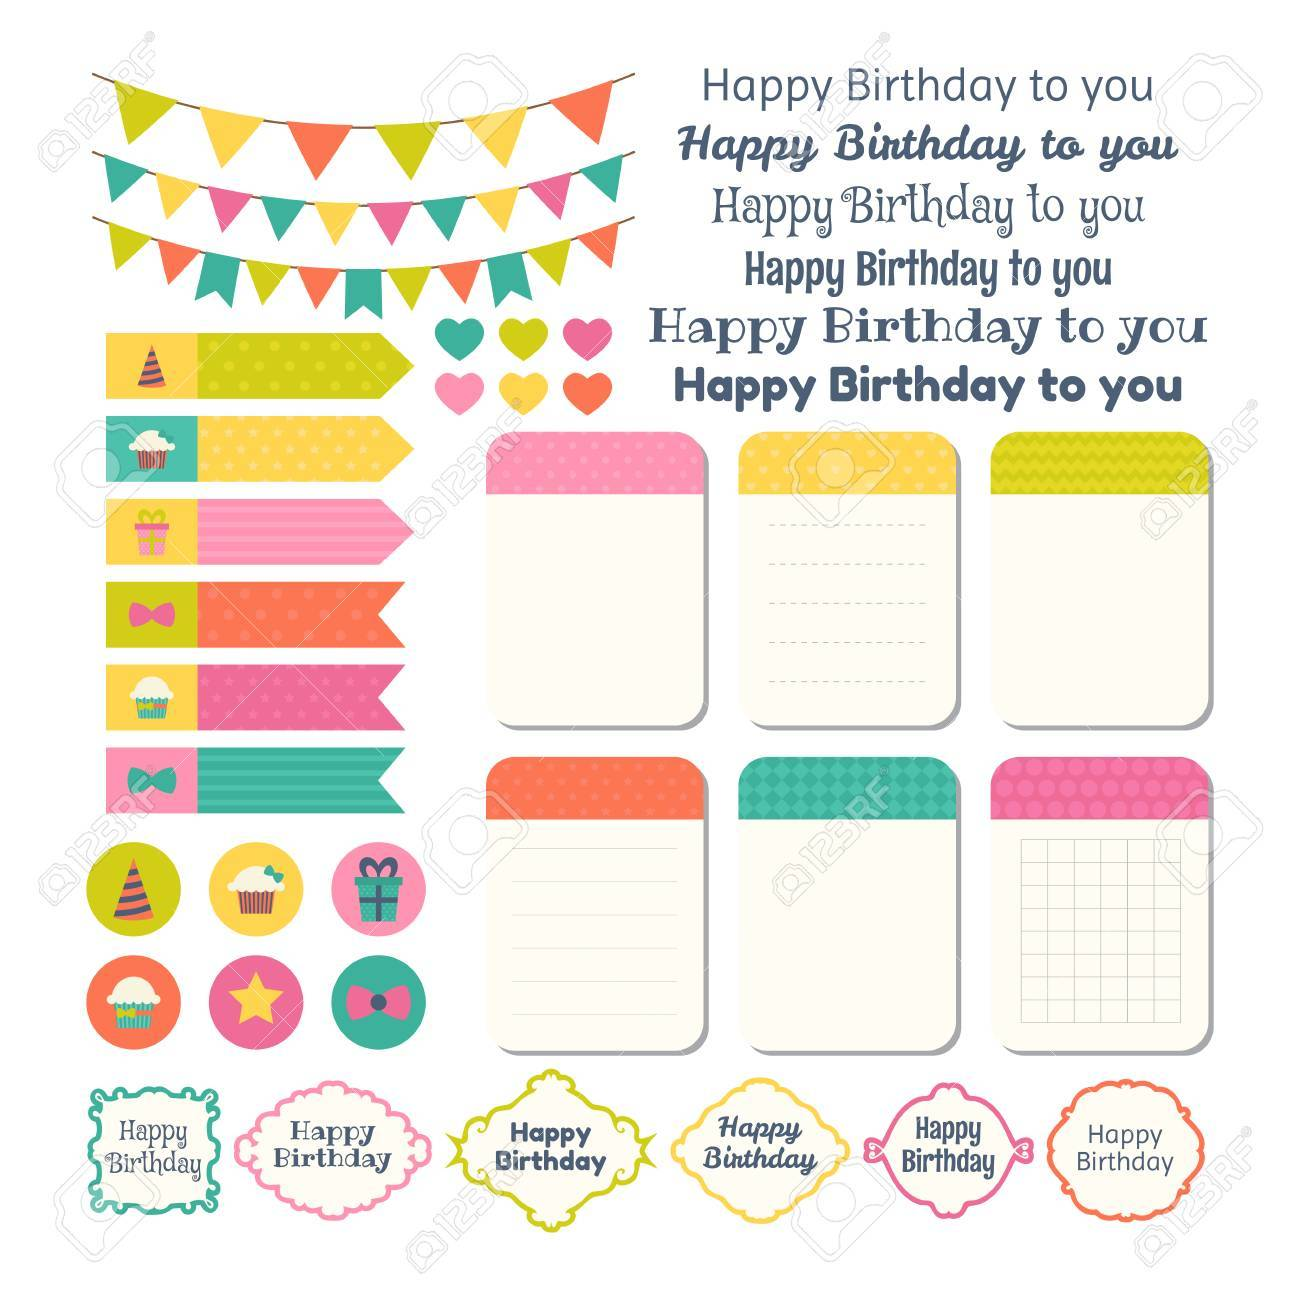 birthday sticker template ; 68722096-set-of-birthday-party-design-elements-template-for-notebooks-monthly-planner-notes-stickers-labels-v